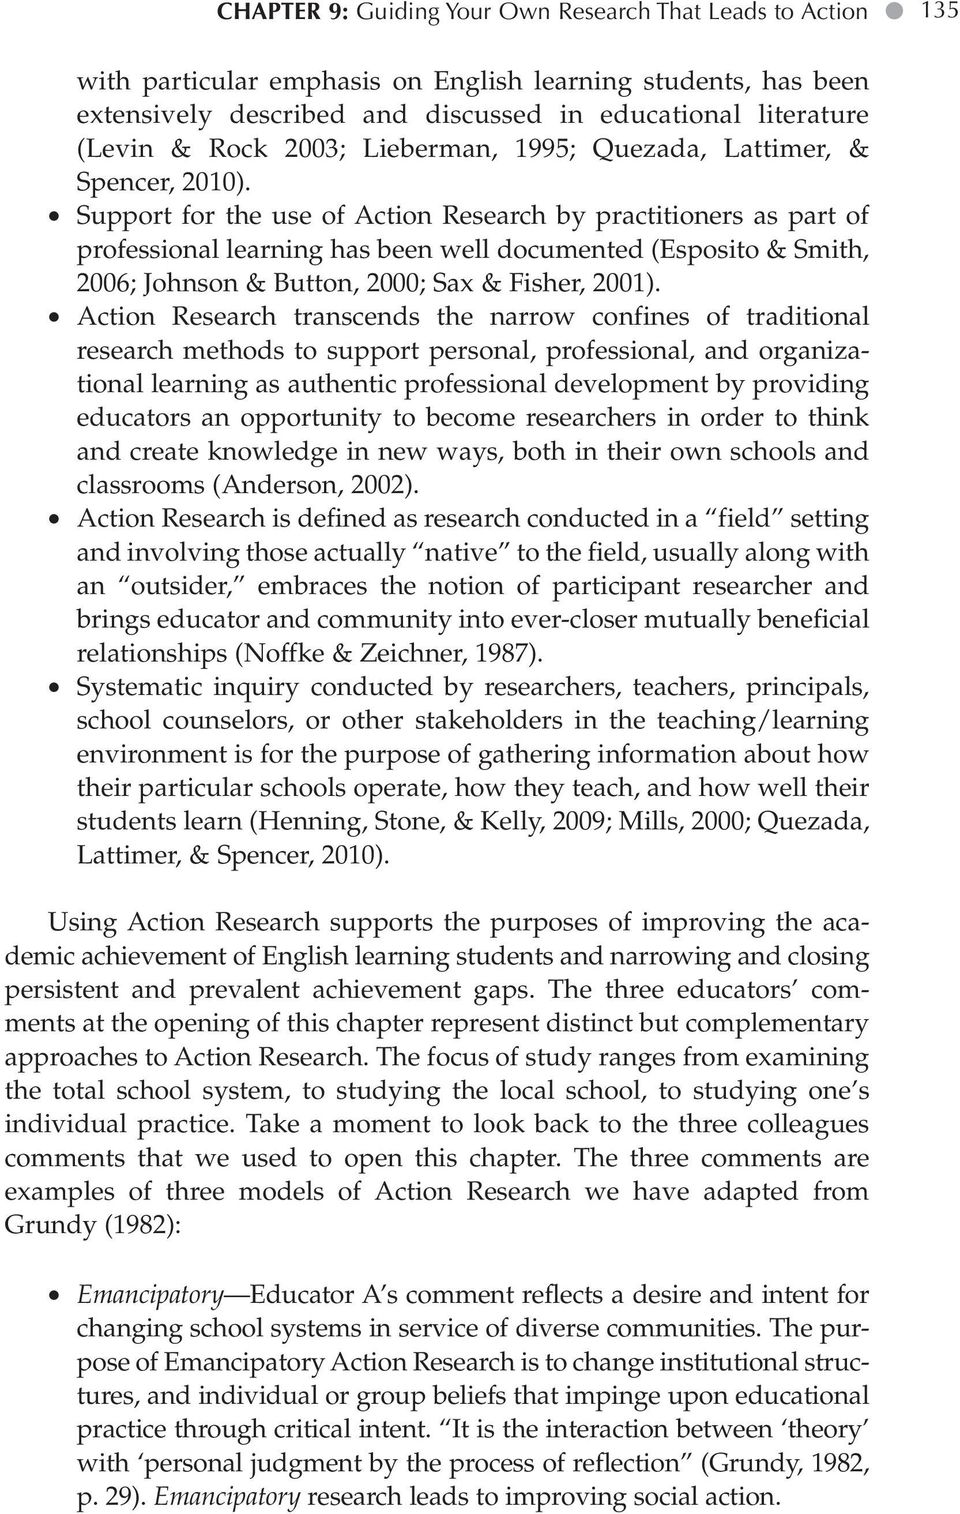 Support for the use of Action Research by practitioners as part of professional learning has been well documented (Esposito & Smith, 2006; Johnson & Button, 2000; Sax & Fisher, 2001).